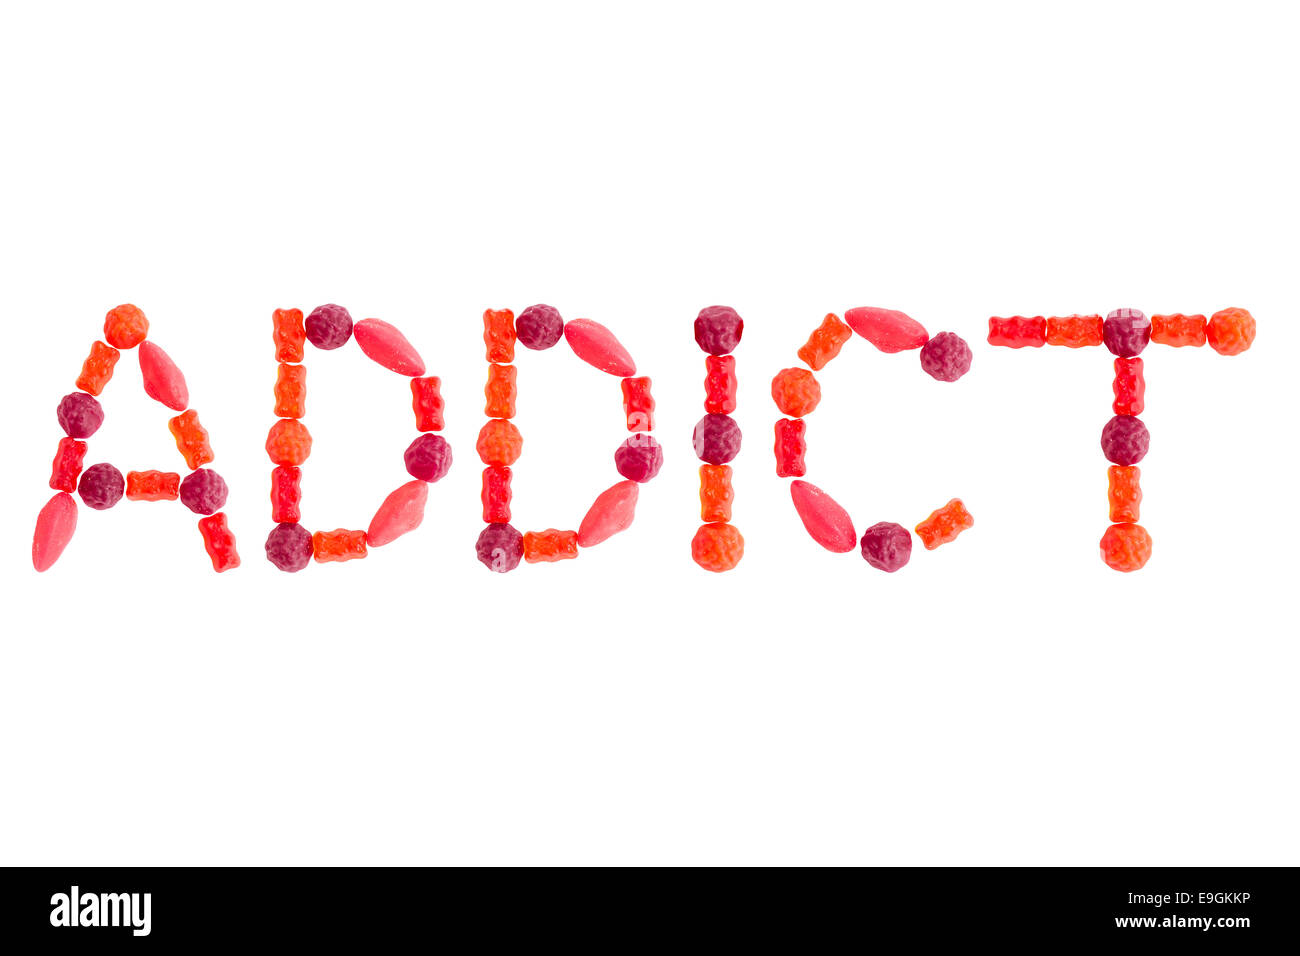 Word ADDICT made of red sugary candies, isolated on white background - Stock Image